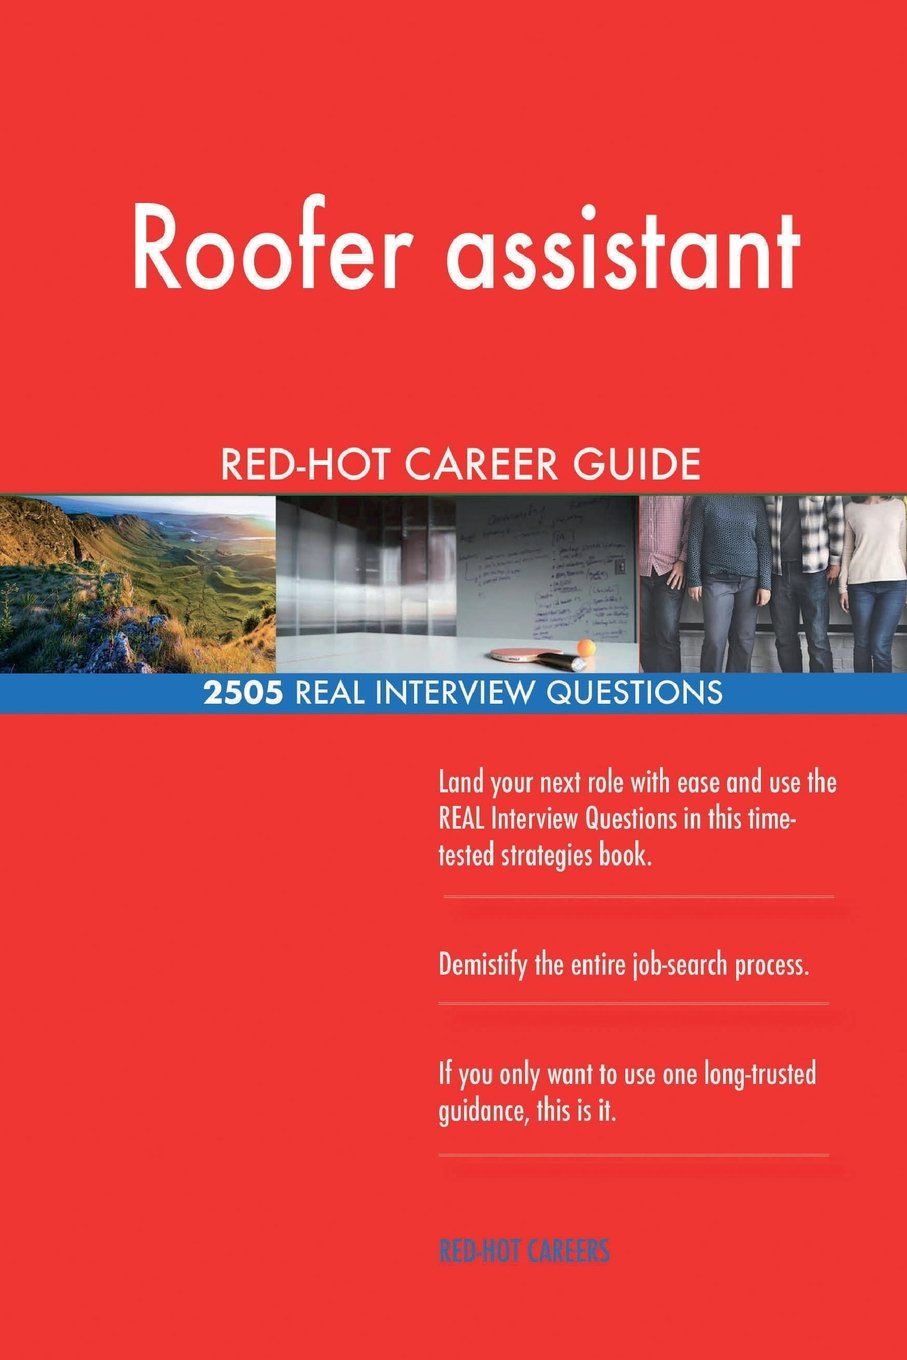 Roofer assistant RED-HOT Career Guide; 2505 REAL Interview Questions pdf